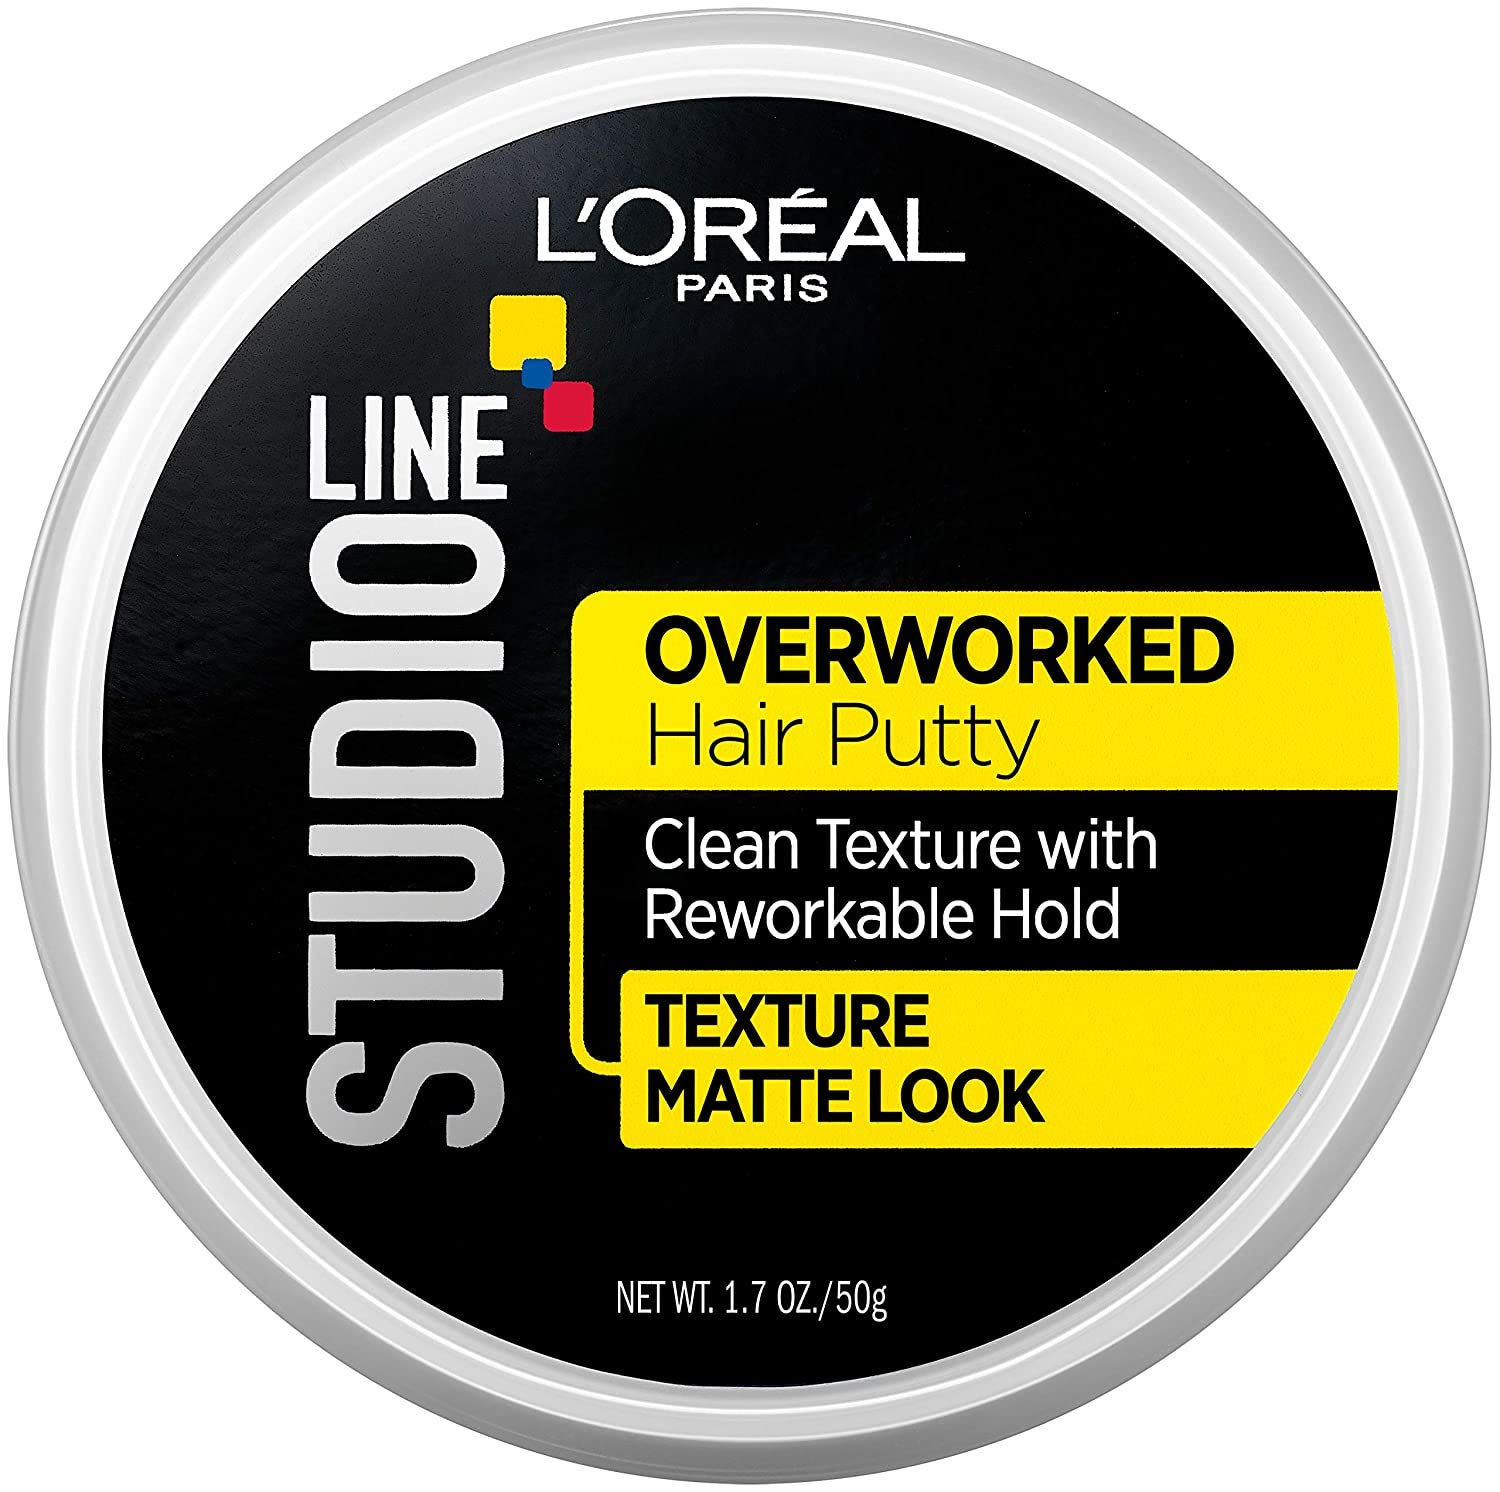 L'Oreal Paris Studio Line Overworked Hair Putty, 1.7 oz.: Beauty